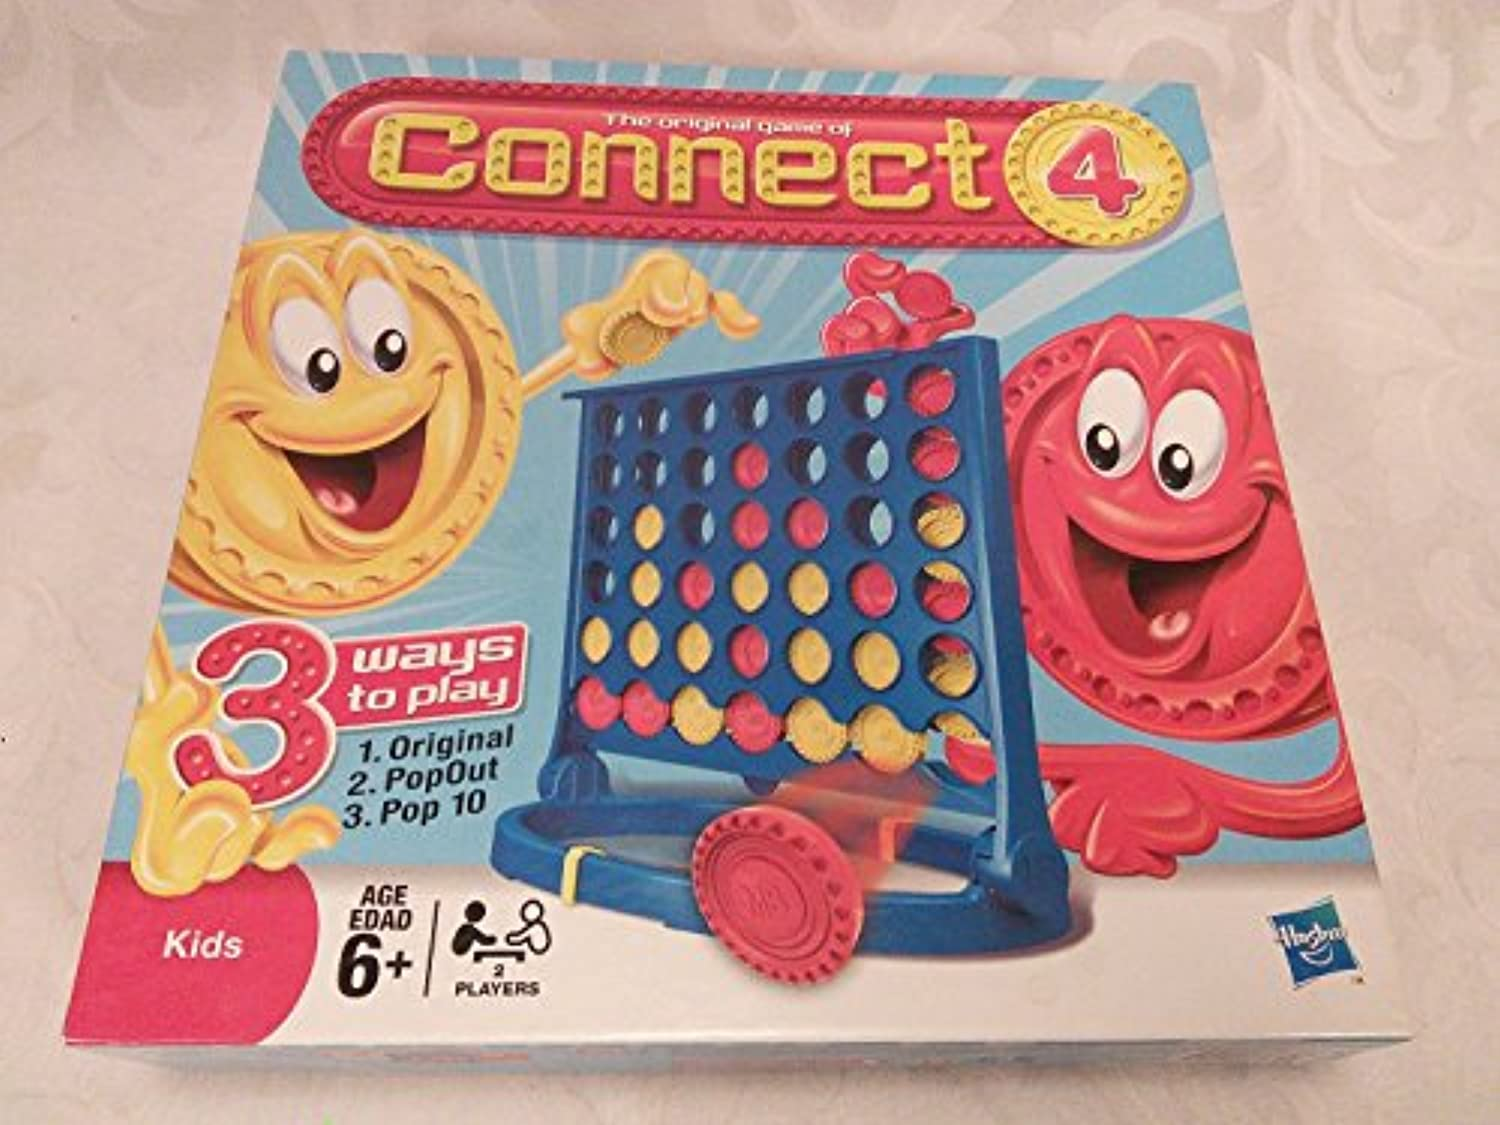 The Original Game Of Connect 4 For Kids 2008 Hasbro MB Games [並行輸入品]